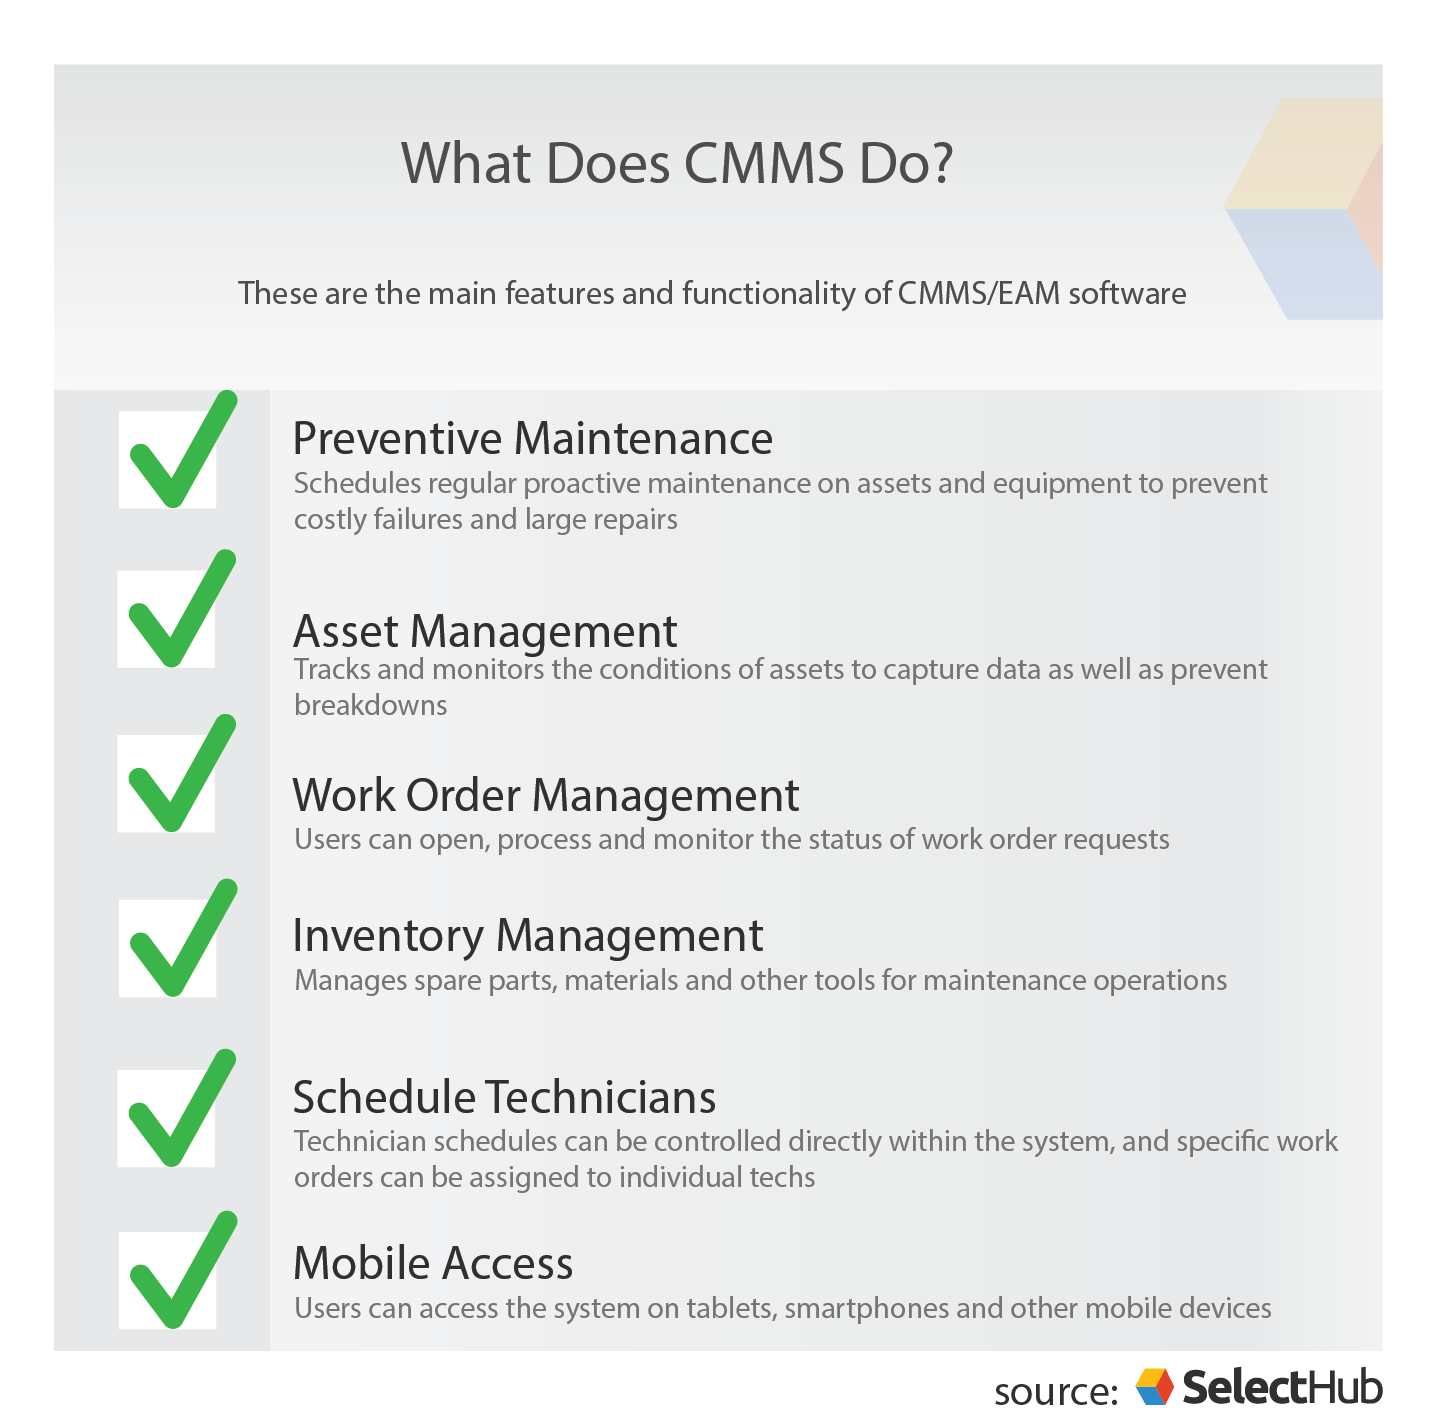 What Does CMMS Do?